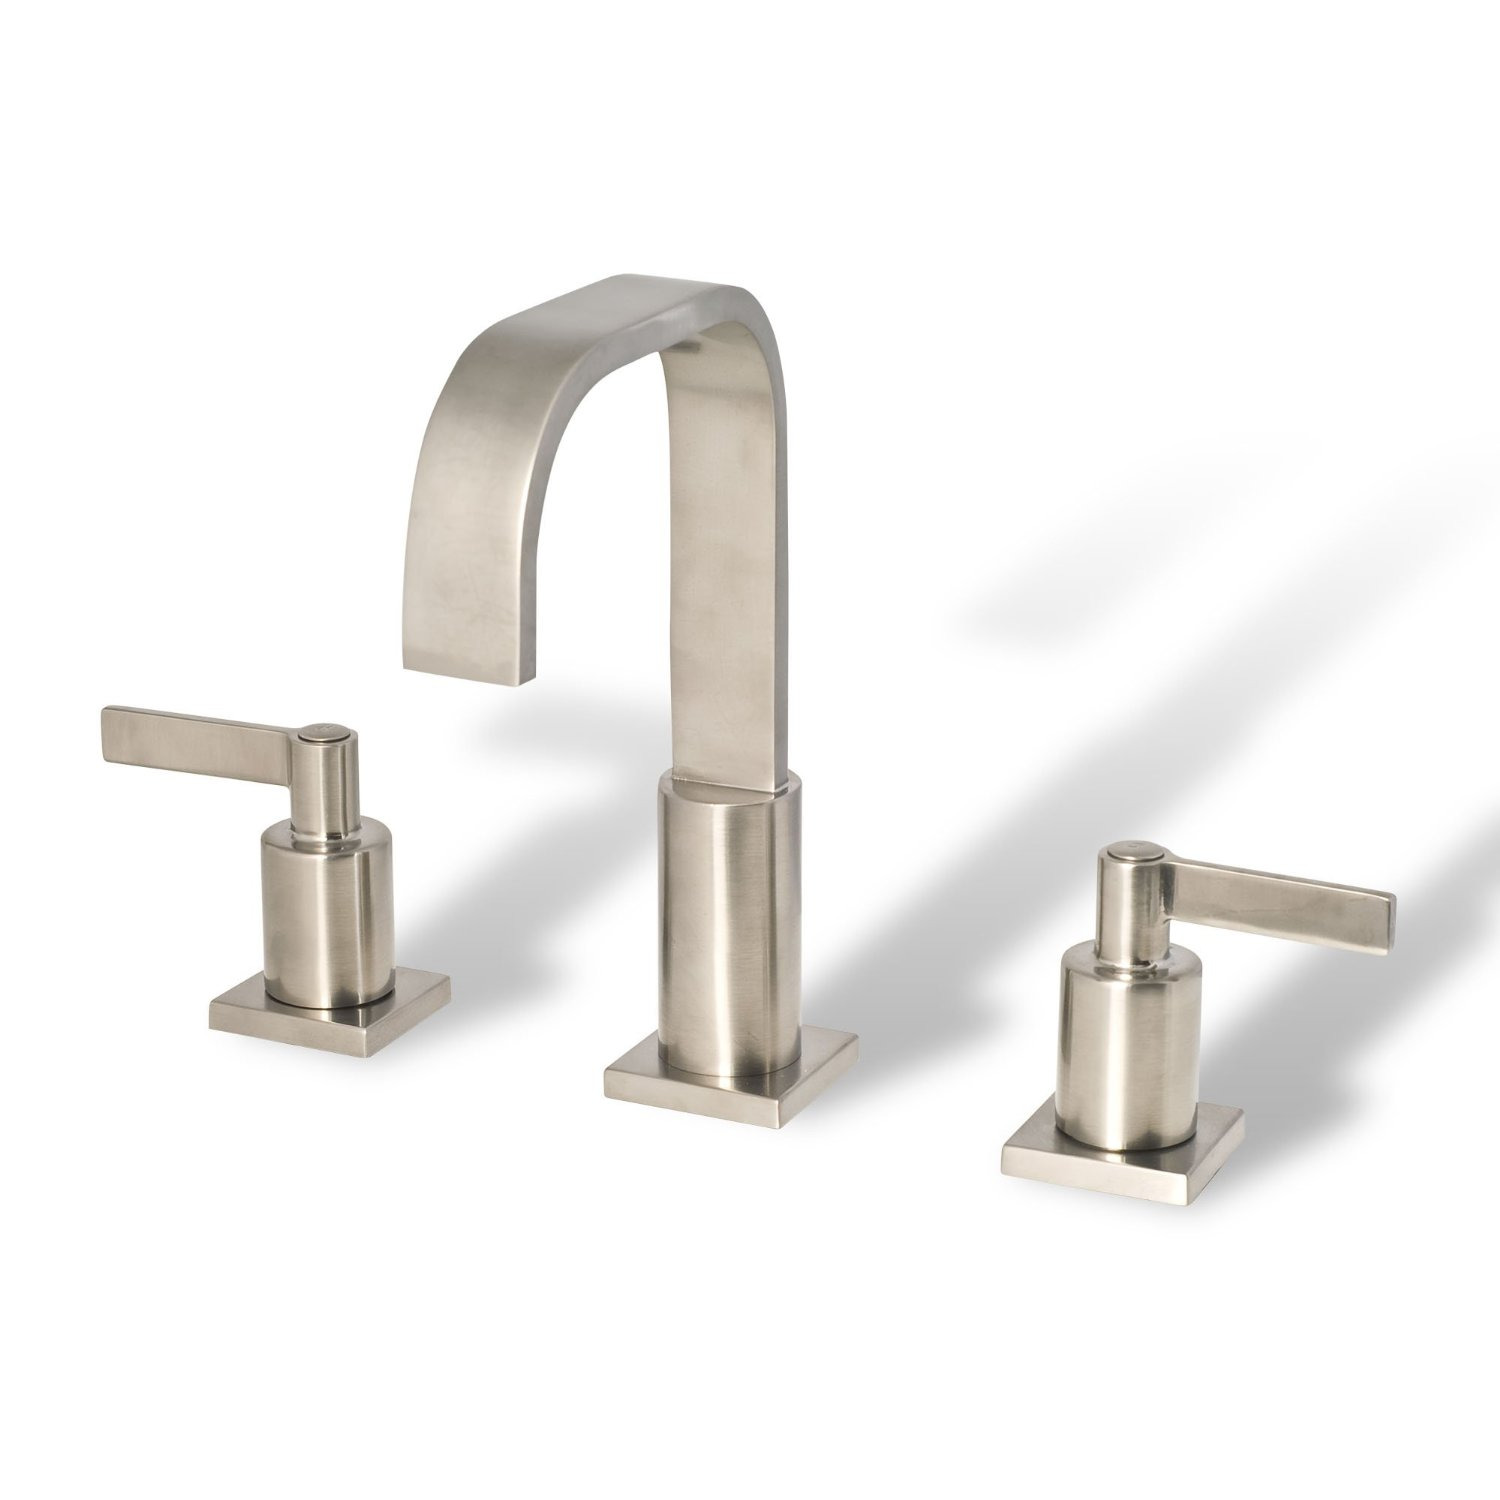 Bathroom Vanity Sink Widespread Lavatory Faucet Brushed Nickel Cupc Nsf Ab 1953 Ebay